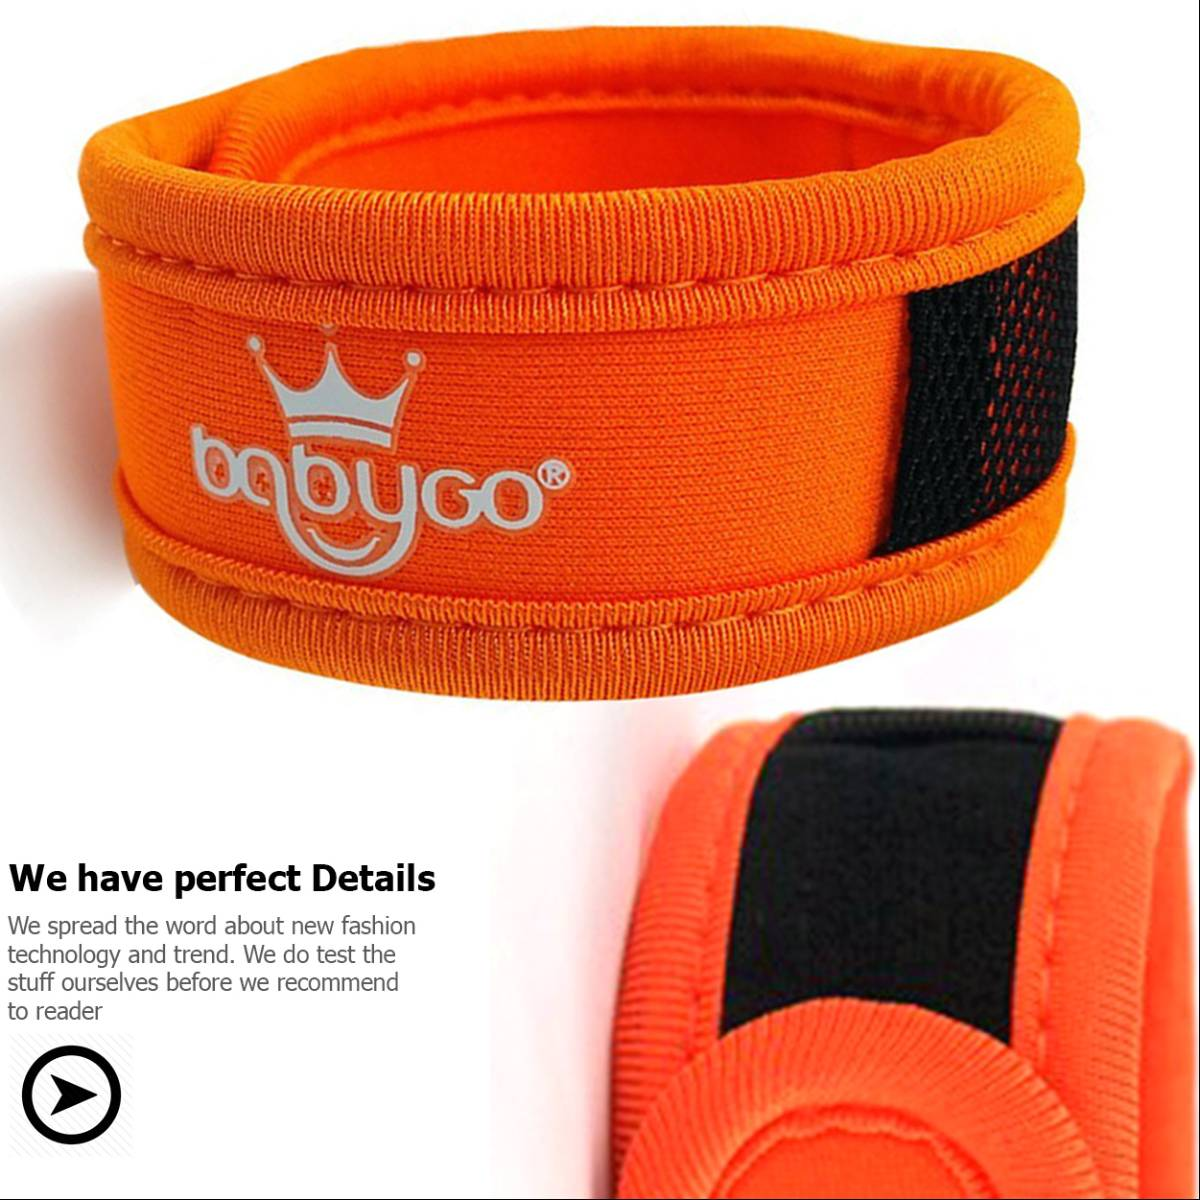 Babygo Neoprene Mosquito Repellent Wristband Orange (gelang Anti Nyamuk)1